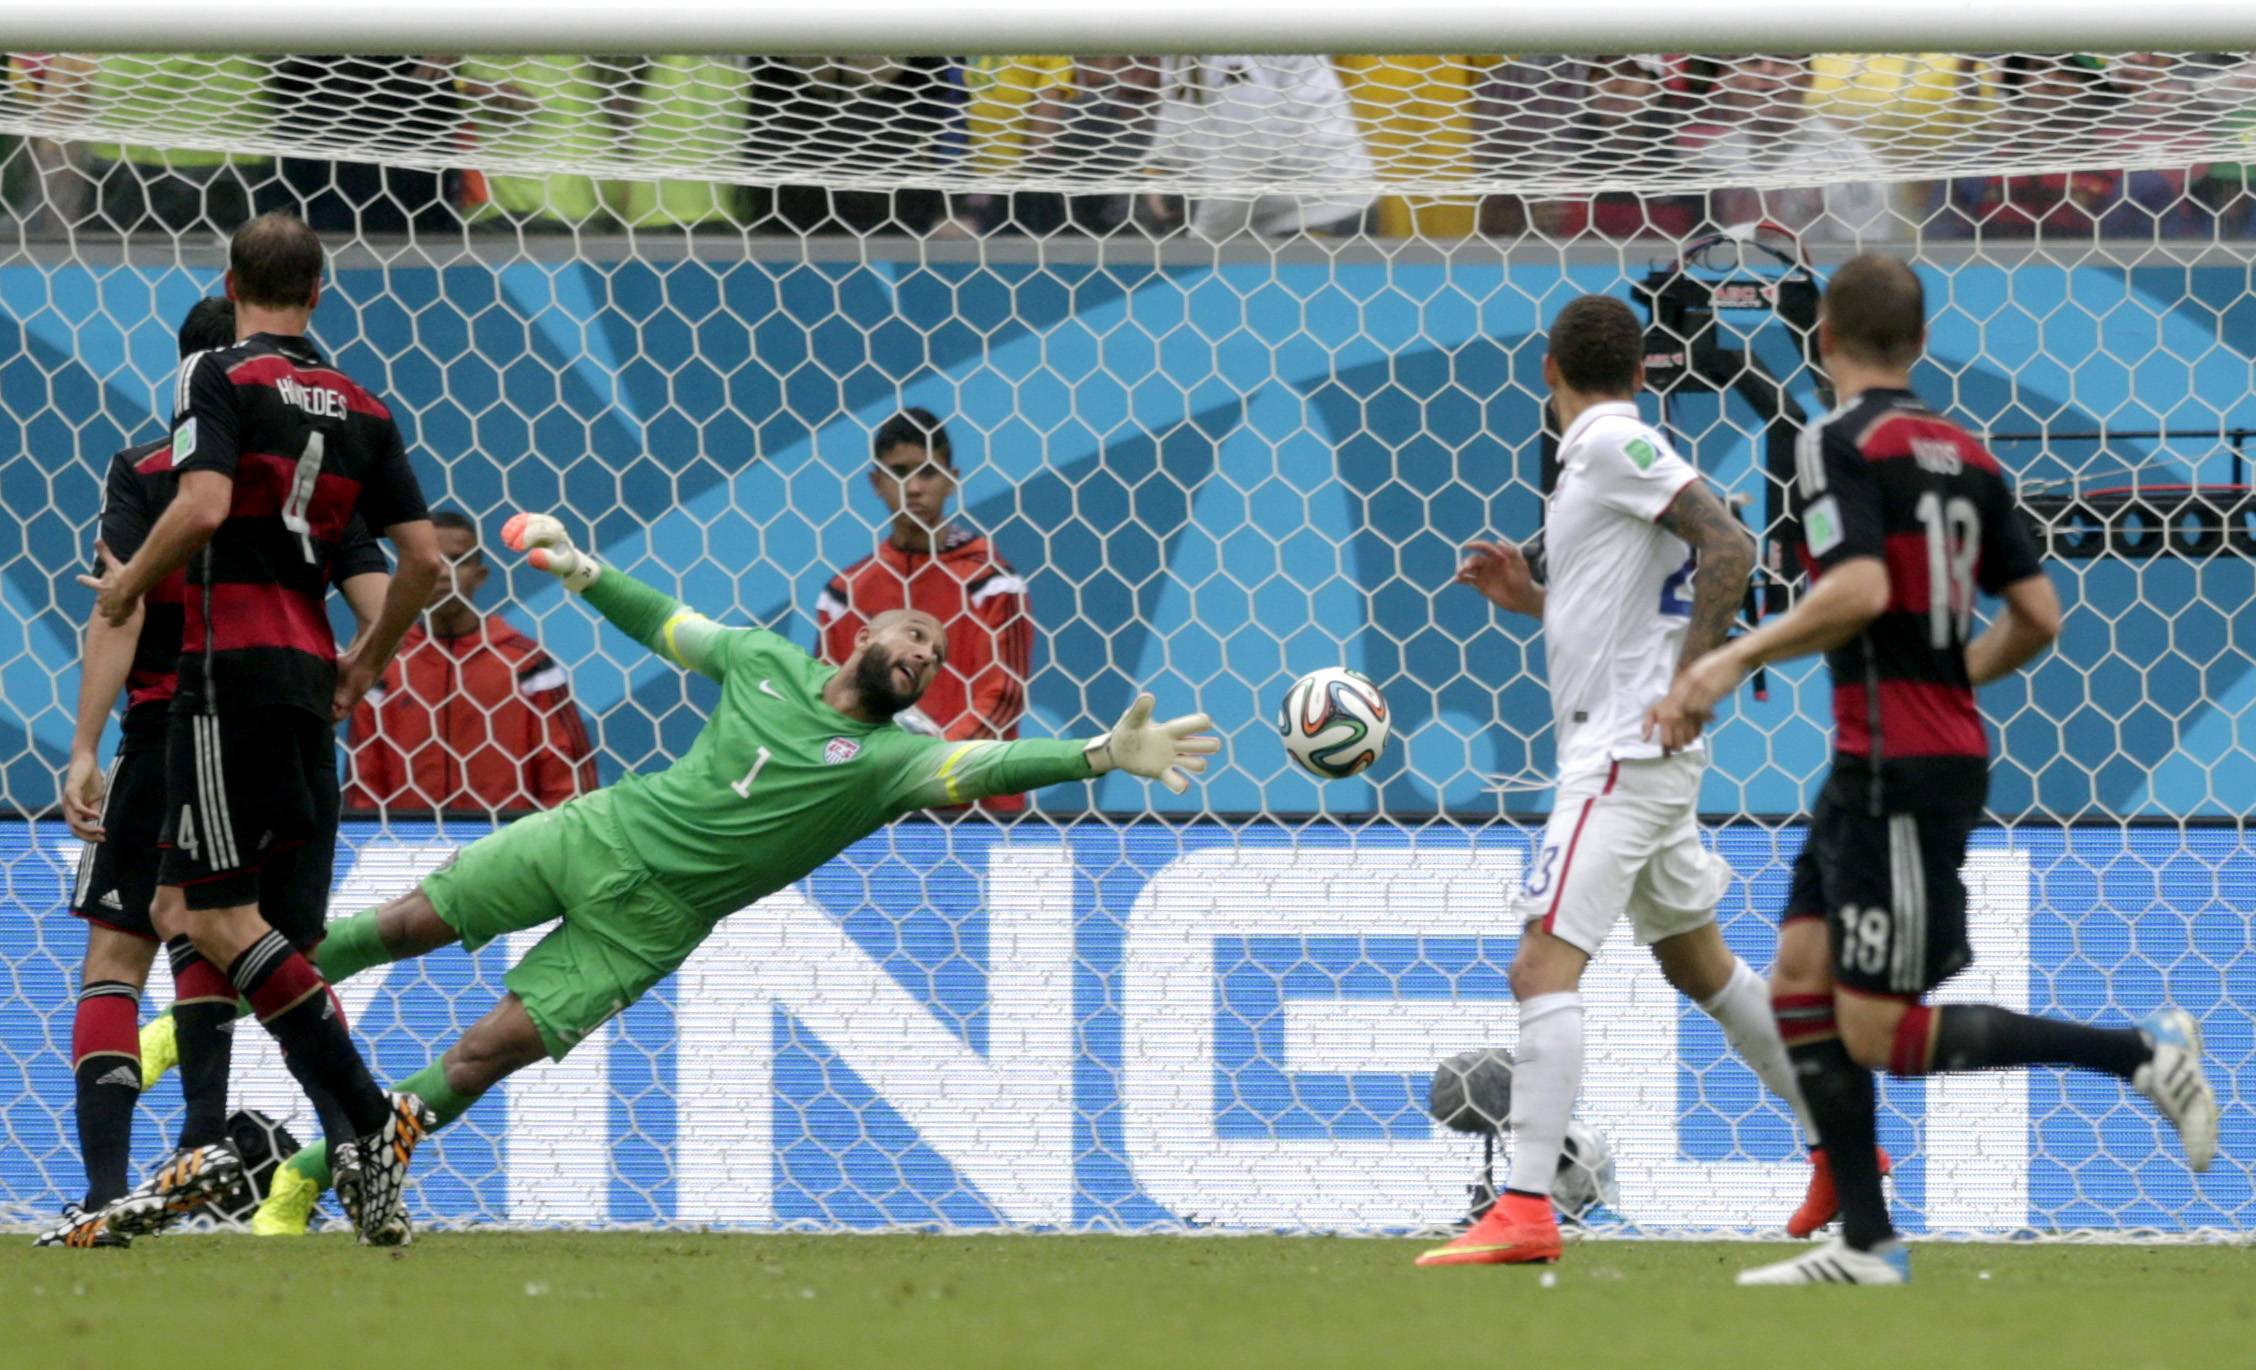 United States' goalkeeper Tim Howard can not stop a shot by Germany's Thomas Mueller to score his side's first goal during the group G World Cup soccer match between the United States and Germany at the Arena Pernambuco in Recife, Brazil, Thursday, June 26, 2014.